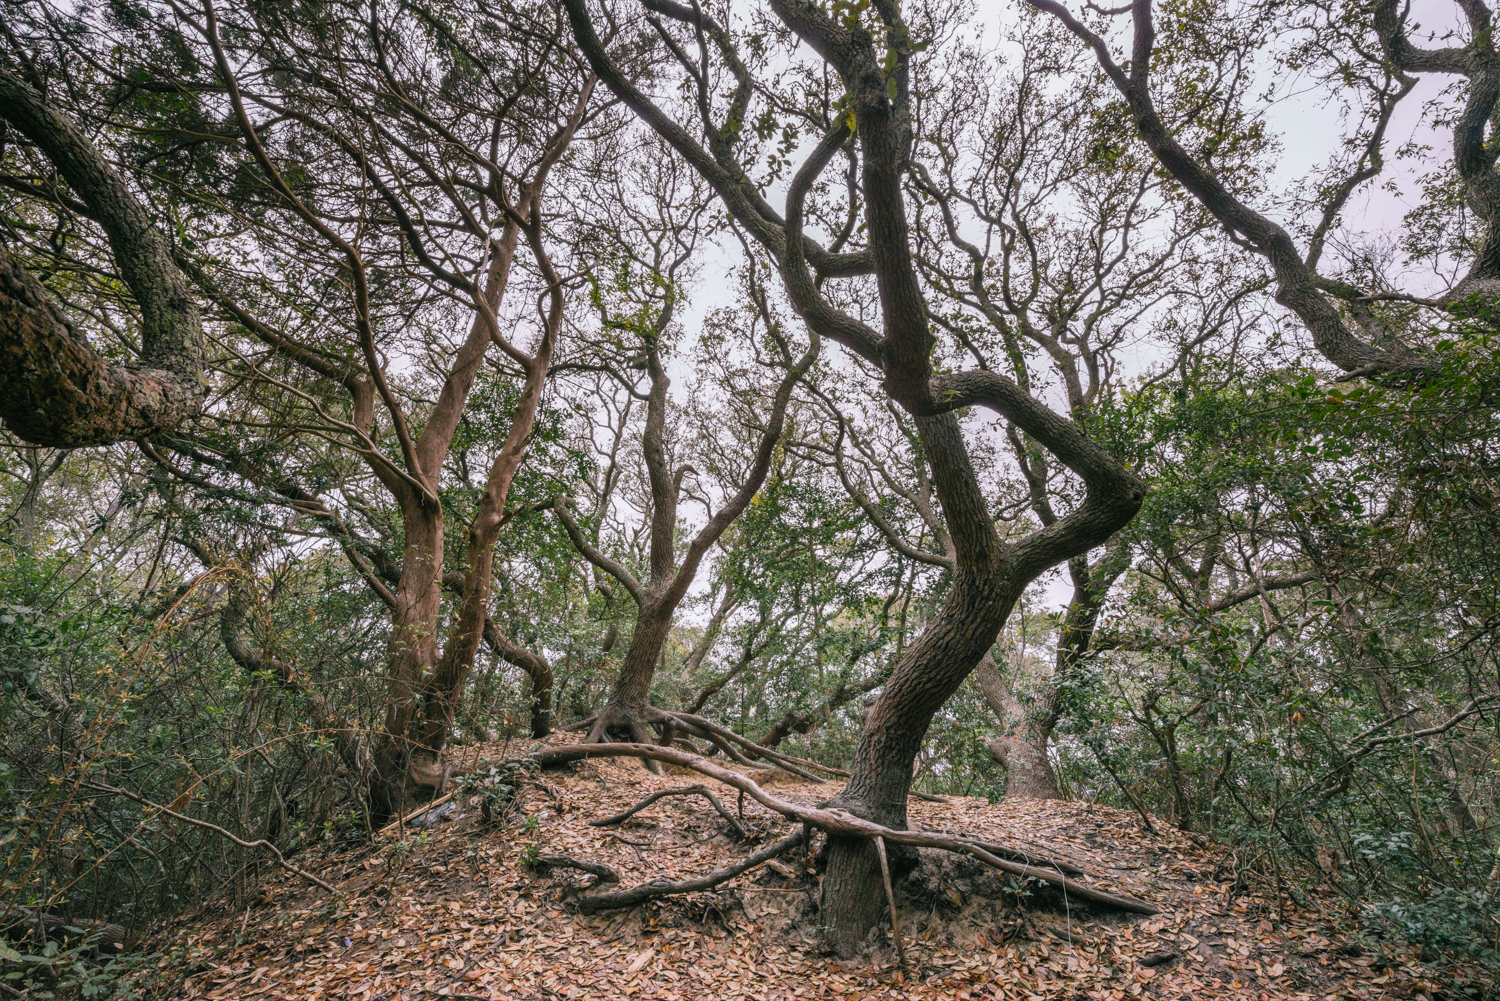 The dunes are home to many Live Oak trees. Some are believed to be hundreds of years old.